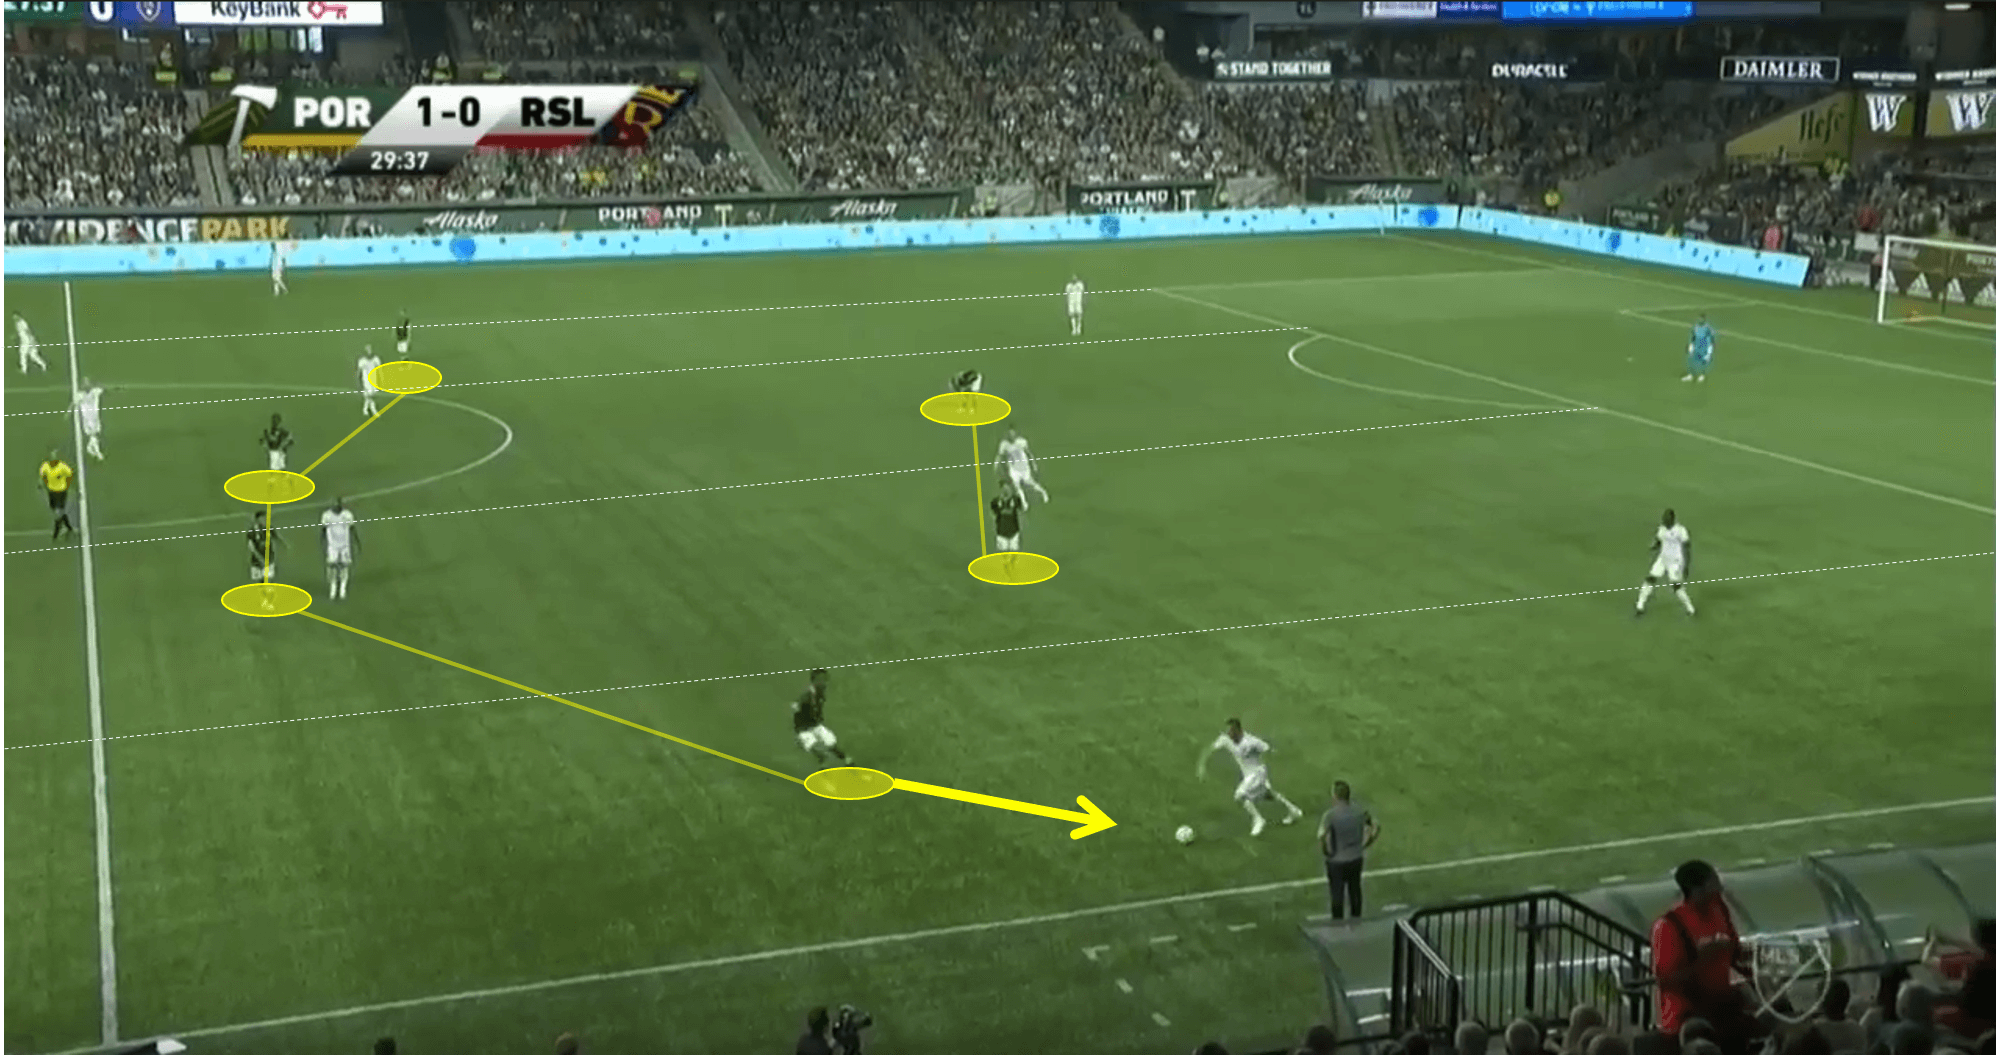 MLS 2019: Portland Timbers vs Real Salt Lake - Tactical Analysis Tactics